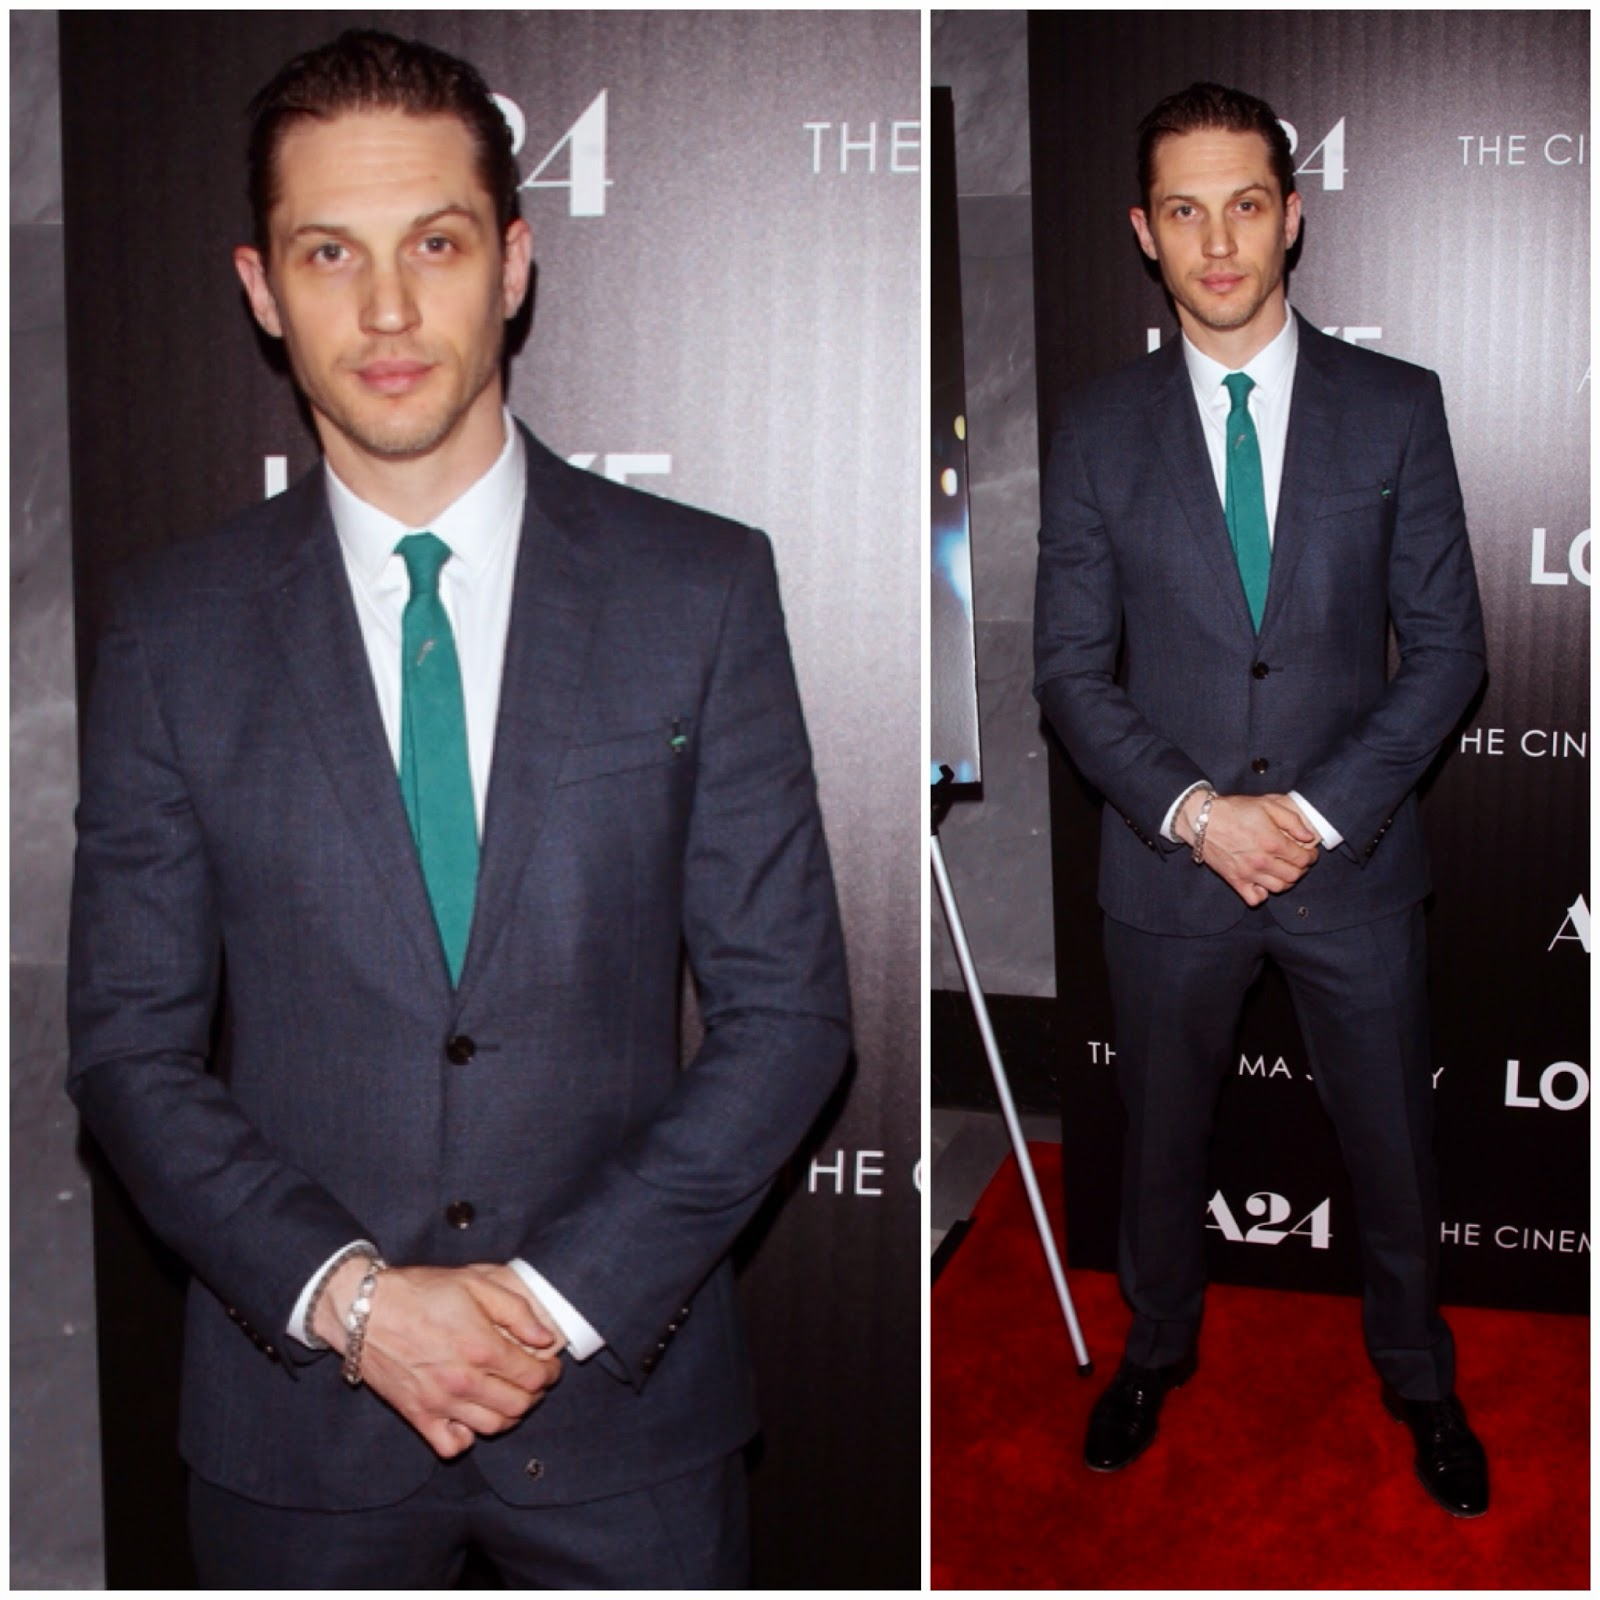 Tom Hardy in Burberry - the A24 and The Cinema Society premiere of 'Locke' at The Paley Center for Media on April 22, 2014 in New York City